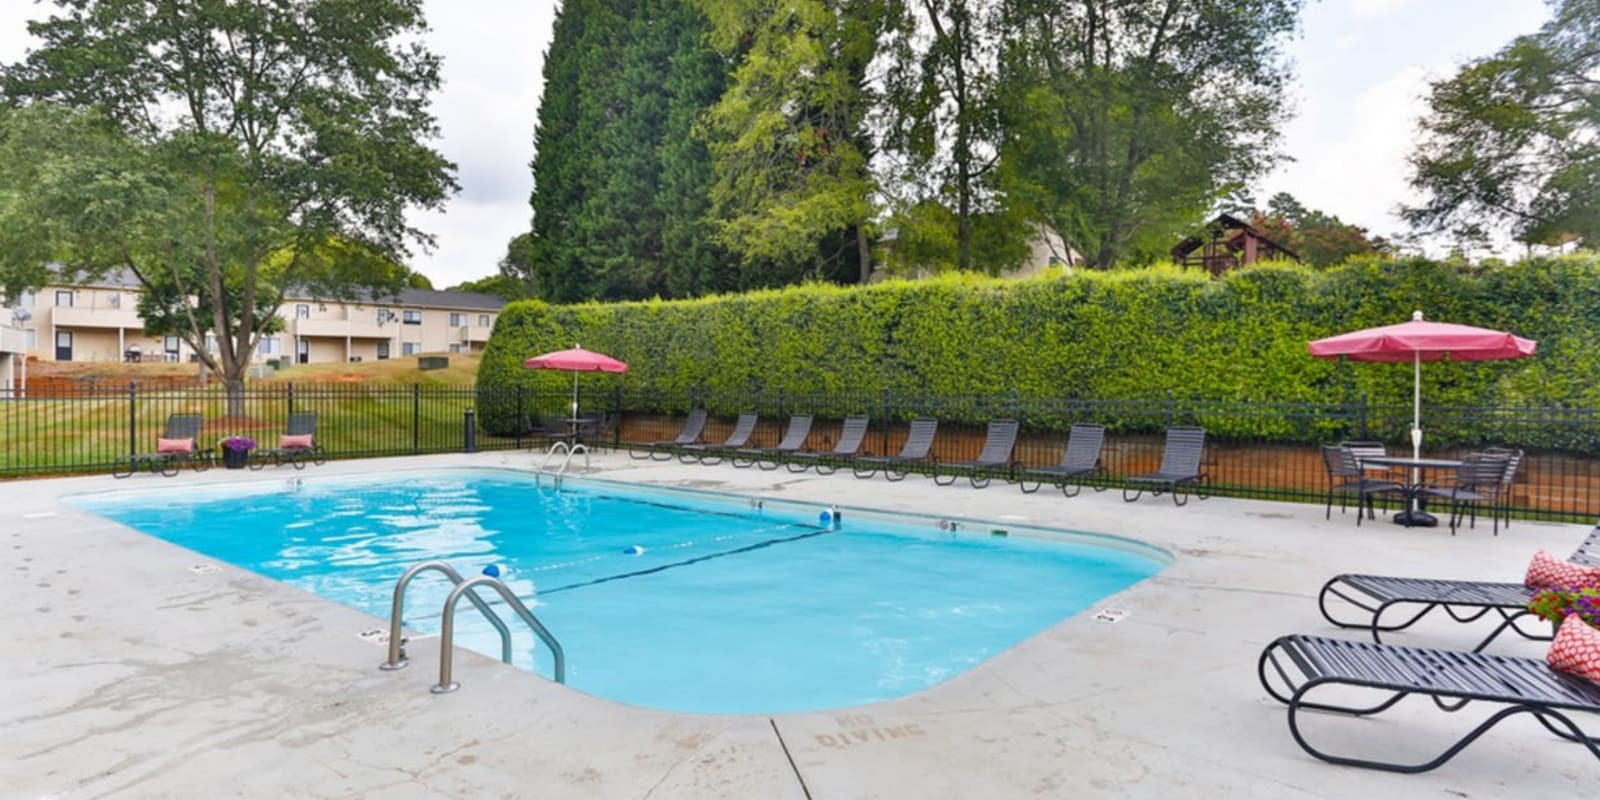 Charming swimming pool with lounge chairs at Huntersville Apartment Homes in Huntersville, North Carolina